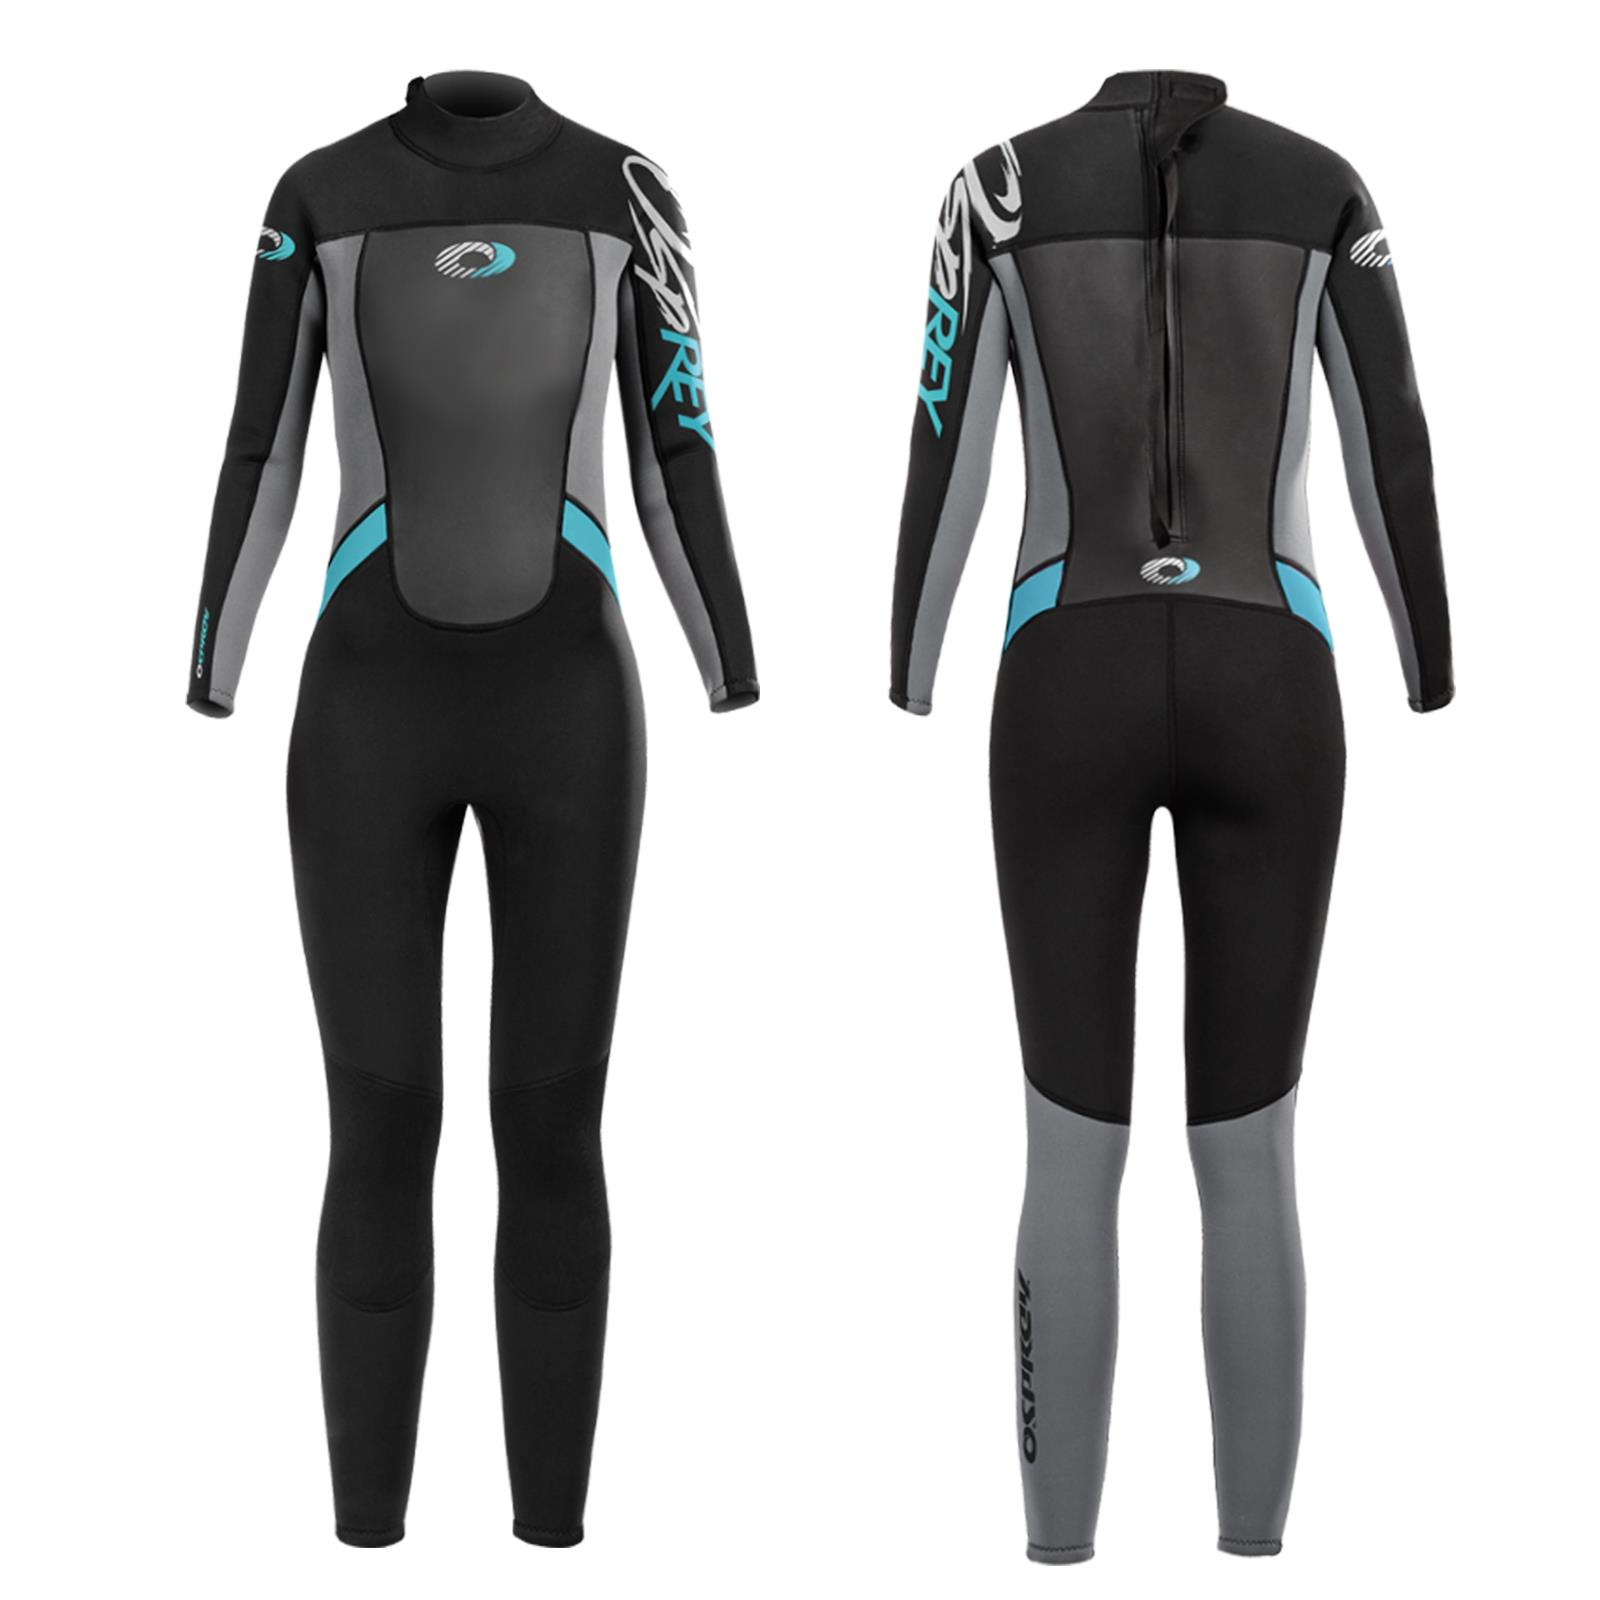 c869f5bc58d7 Details about Osprey Boys Girls 5mm Wetsuit Full Length Junior Long Kids  Childs Surf Winter